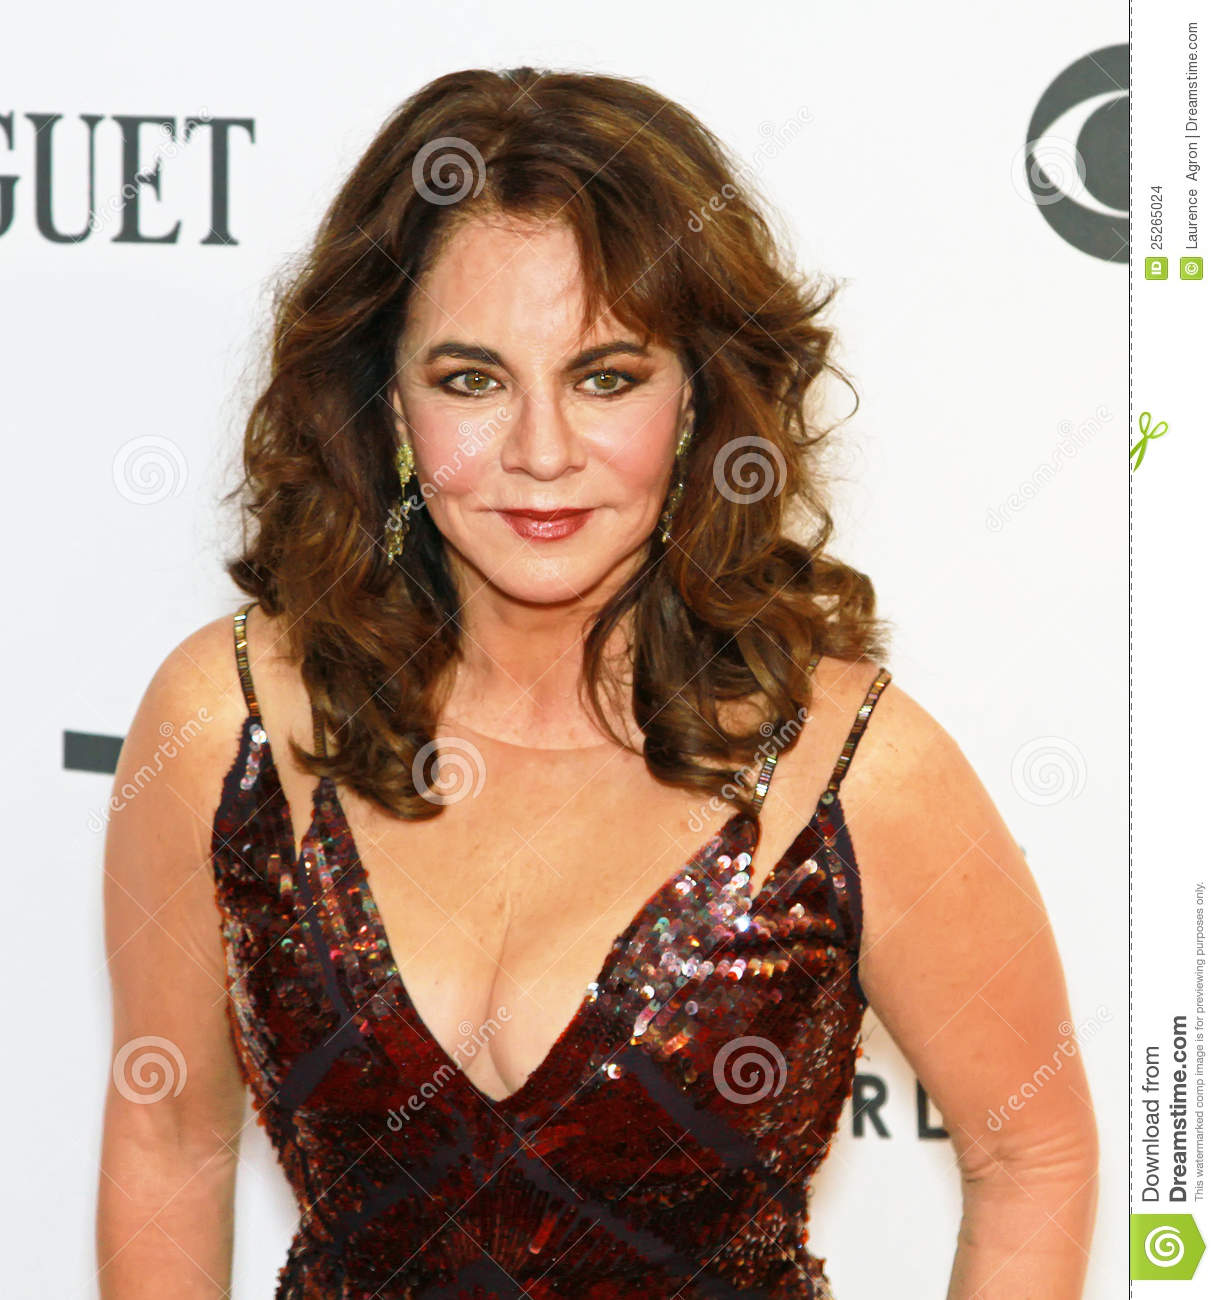 Stockard Channing Editorial Stock Image - Image: 25265024